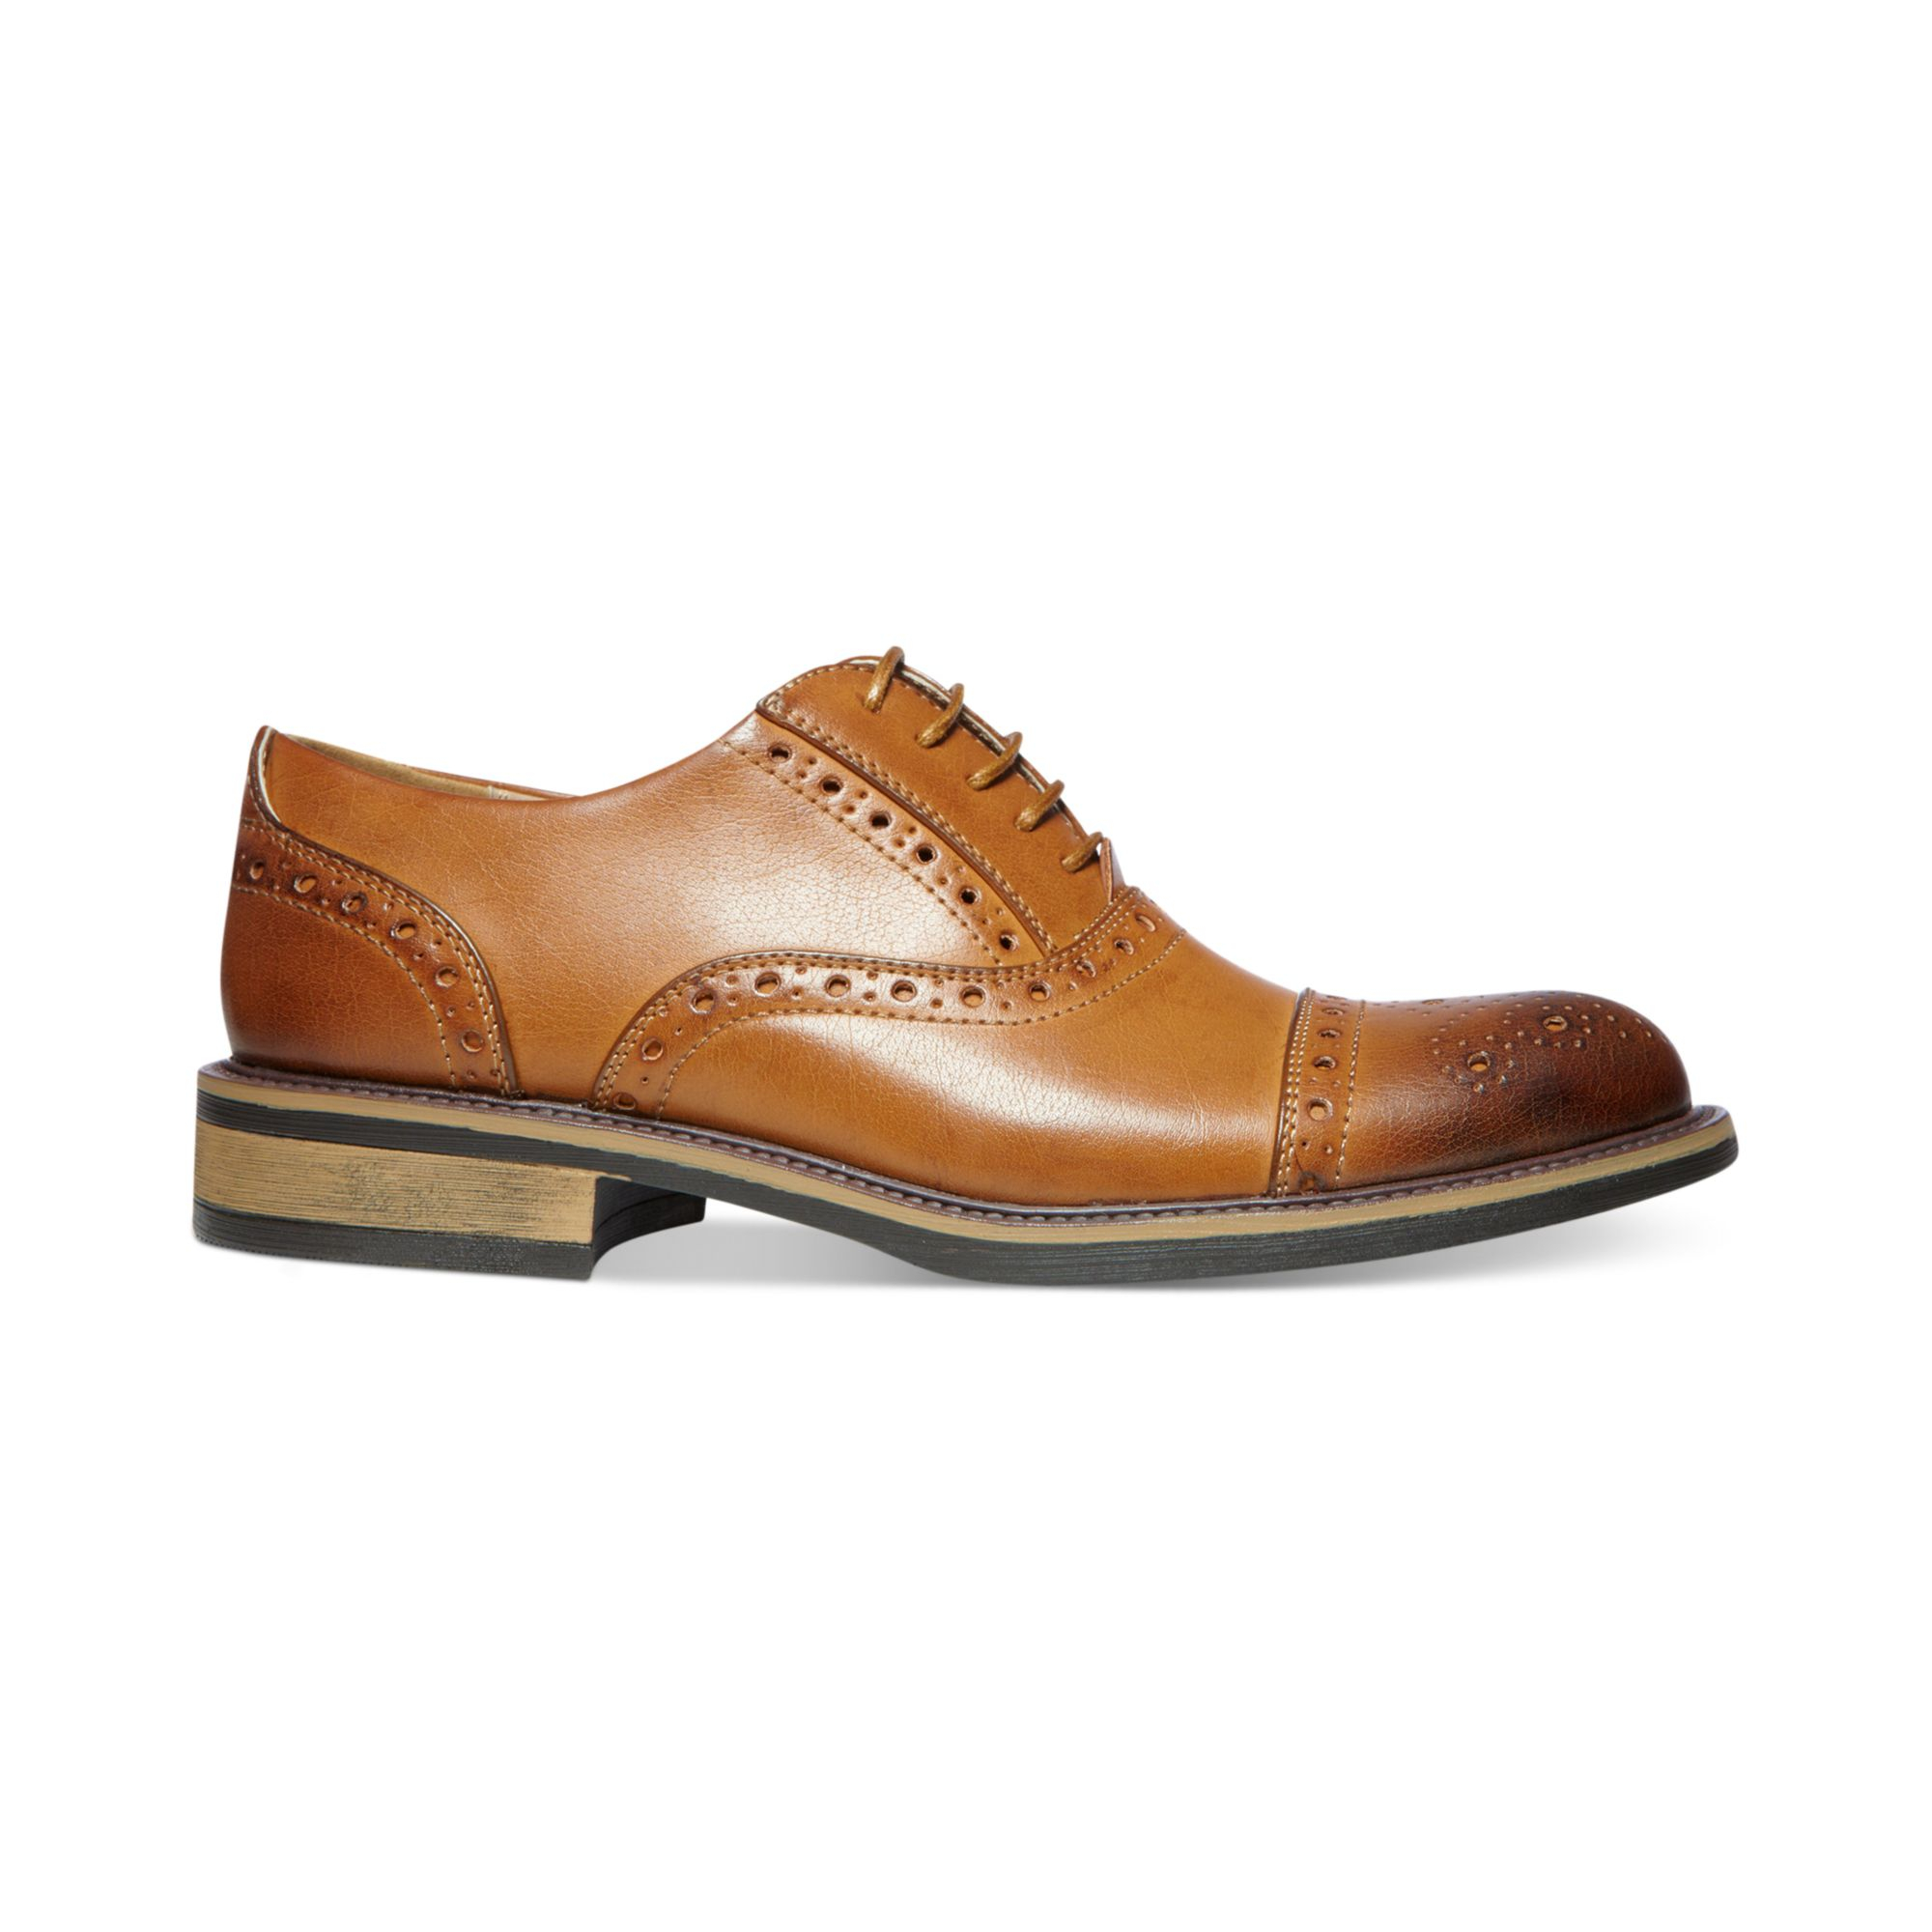 steve madden madden ziggy cap toe dress shoes in brown for